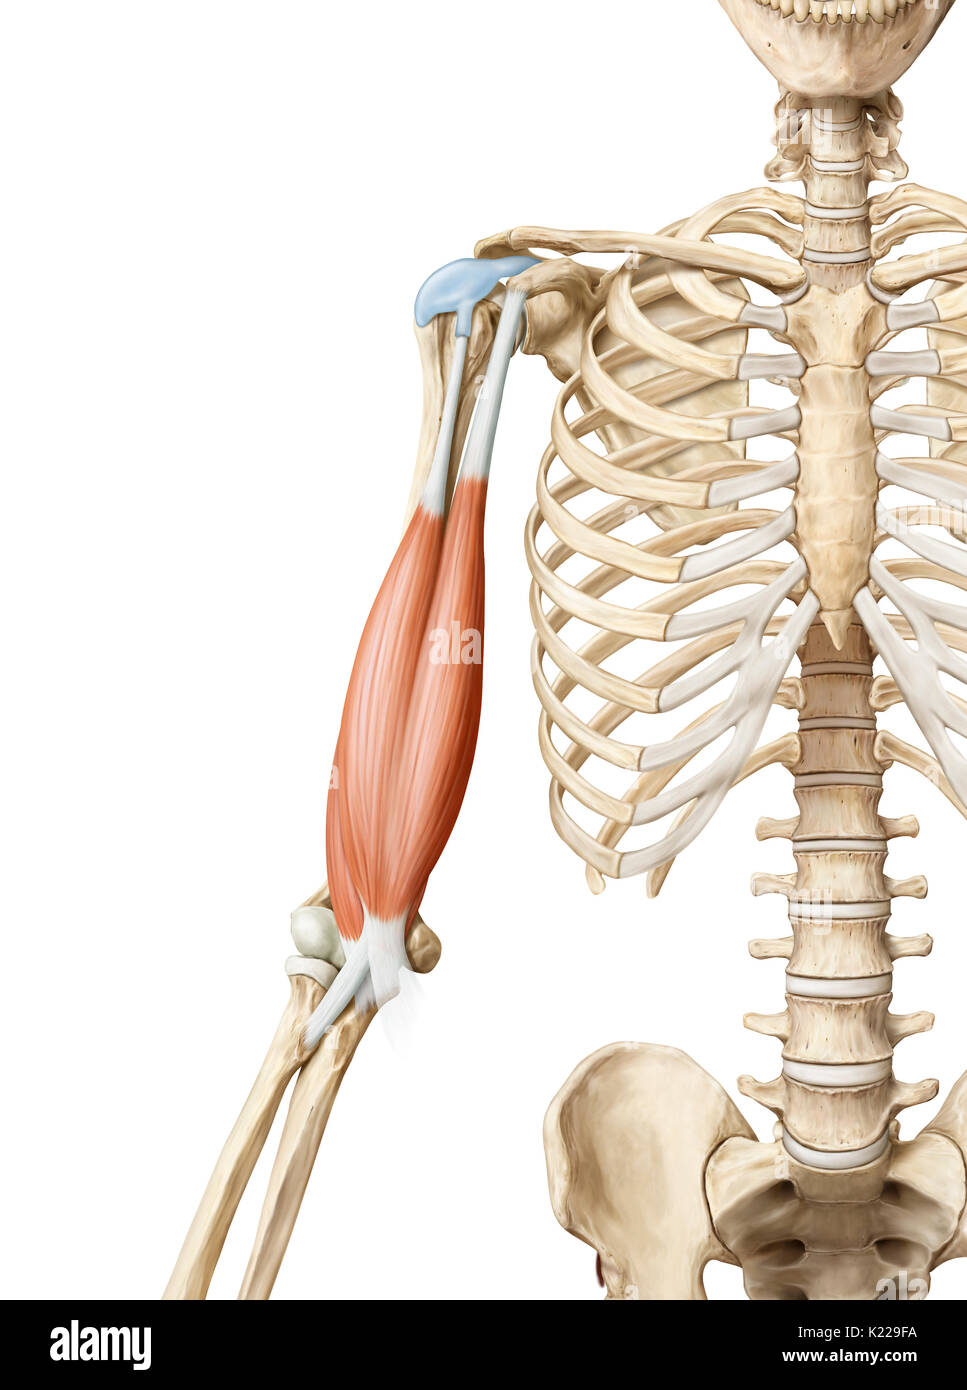 Triceps Muscle Stock Photos & Triceps Muscle Stock Images - Alamy